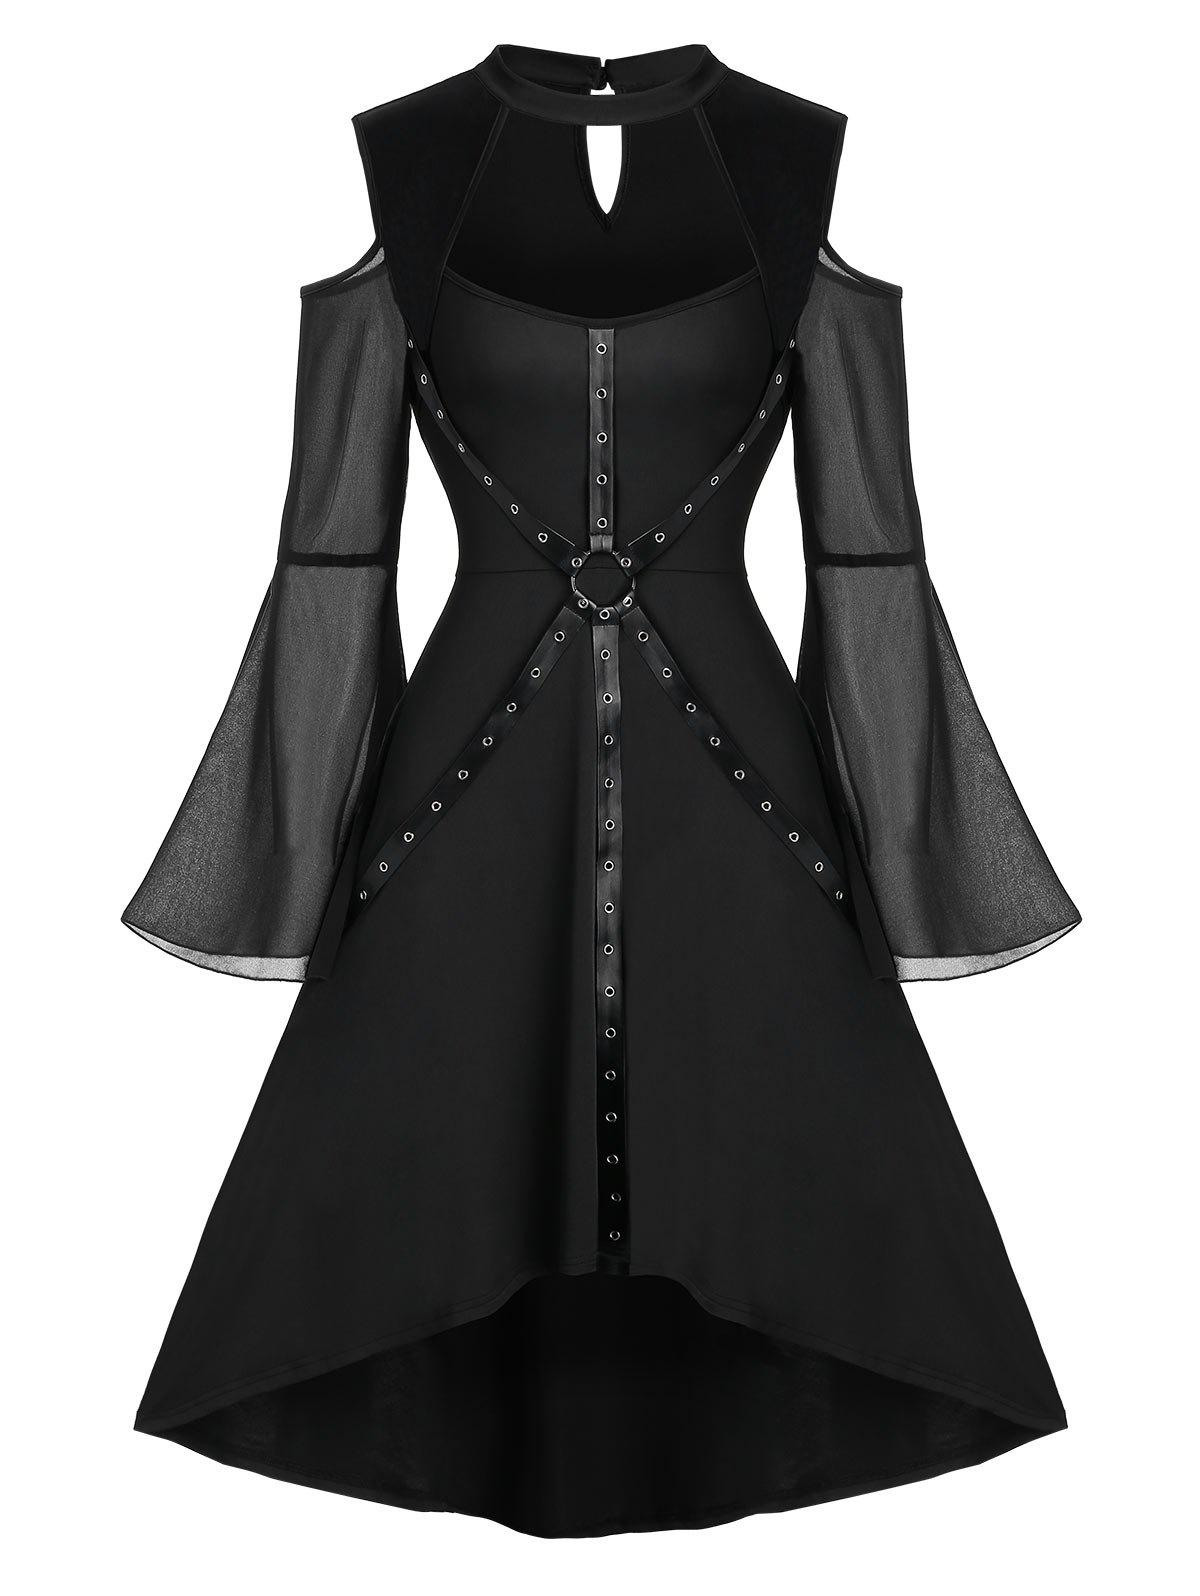 Unique Halloween Bell Sleeve Cut Out Harness Grommet Gothic Dress